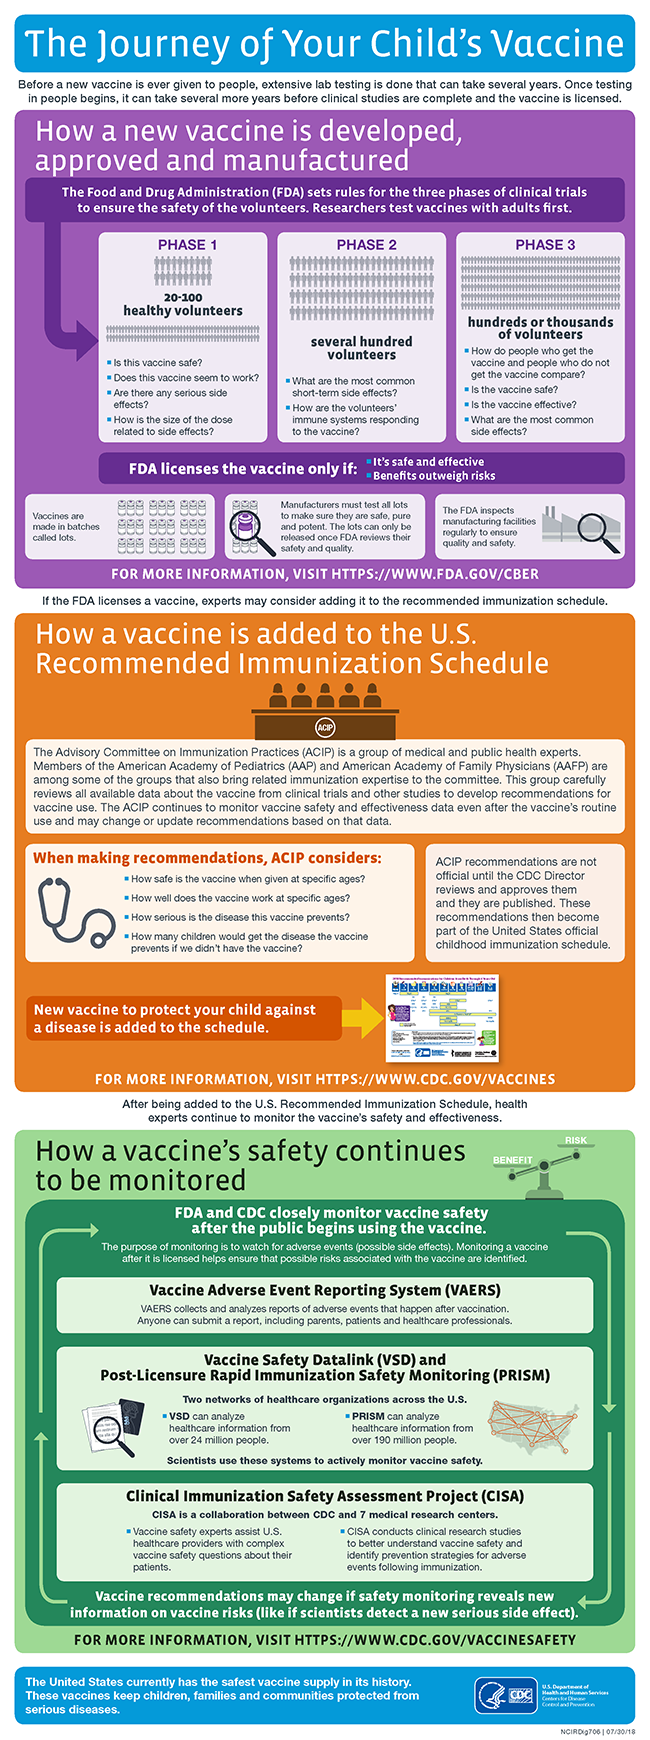 The Journey of Your Child's Vaccine infographic